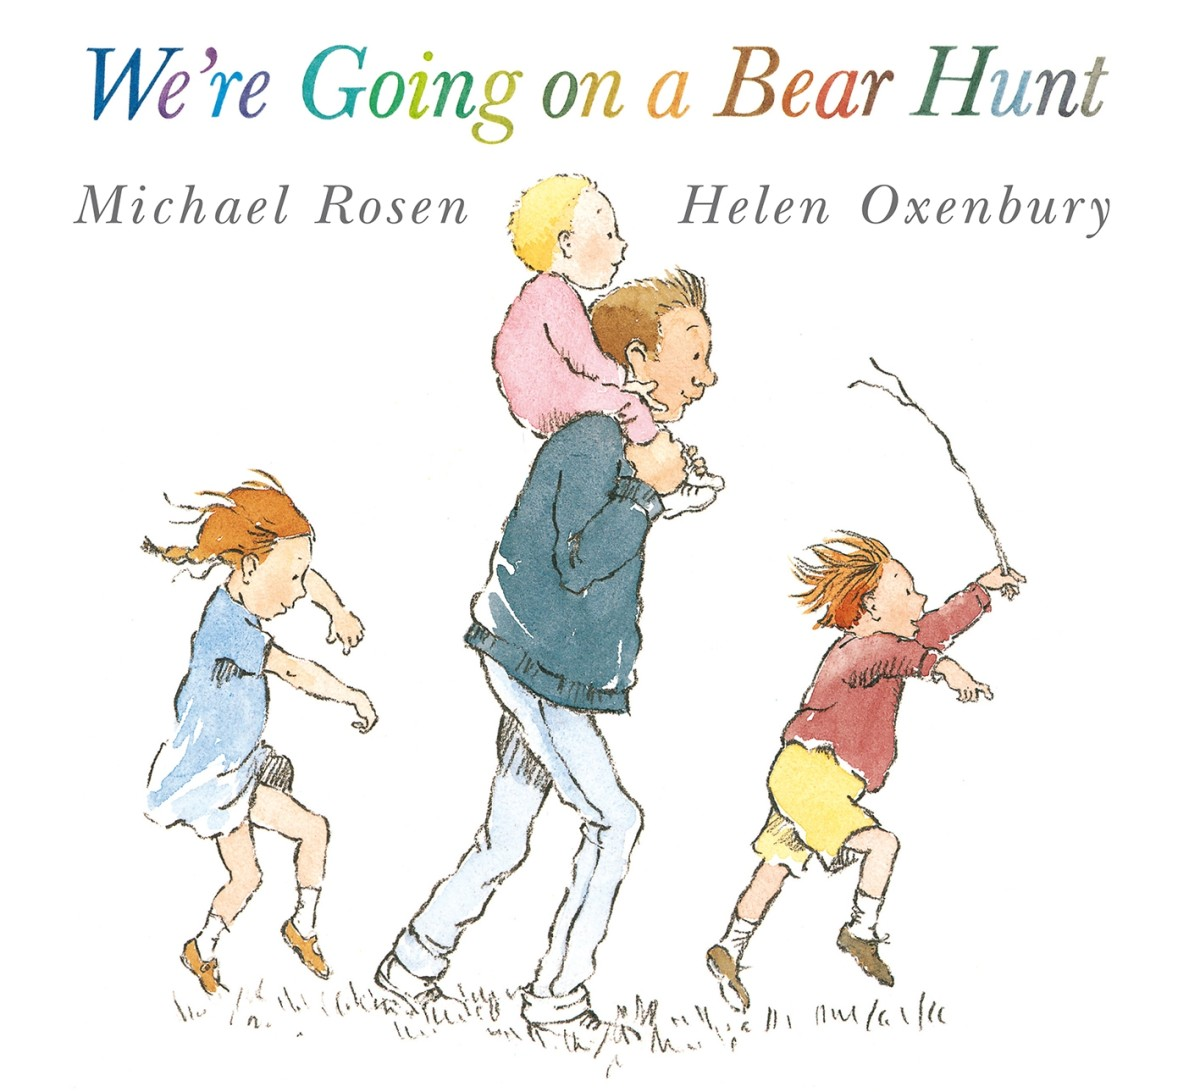 Going on a Bear Hunt by Helen Oxenbury